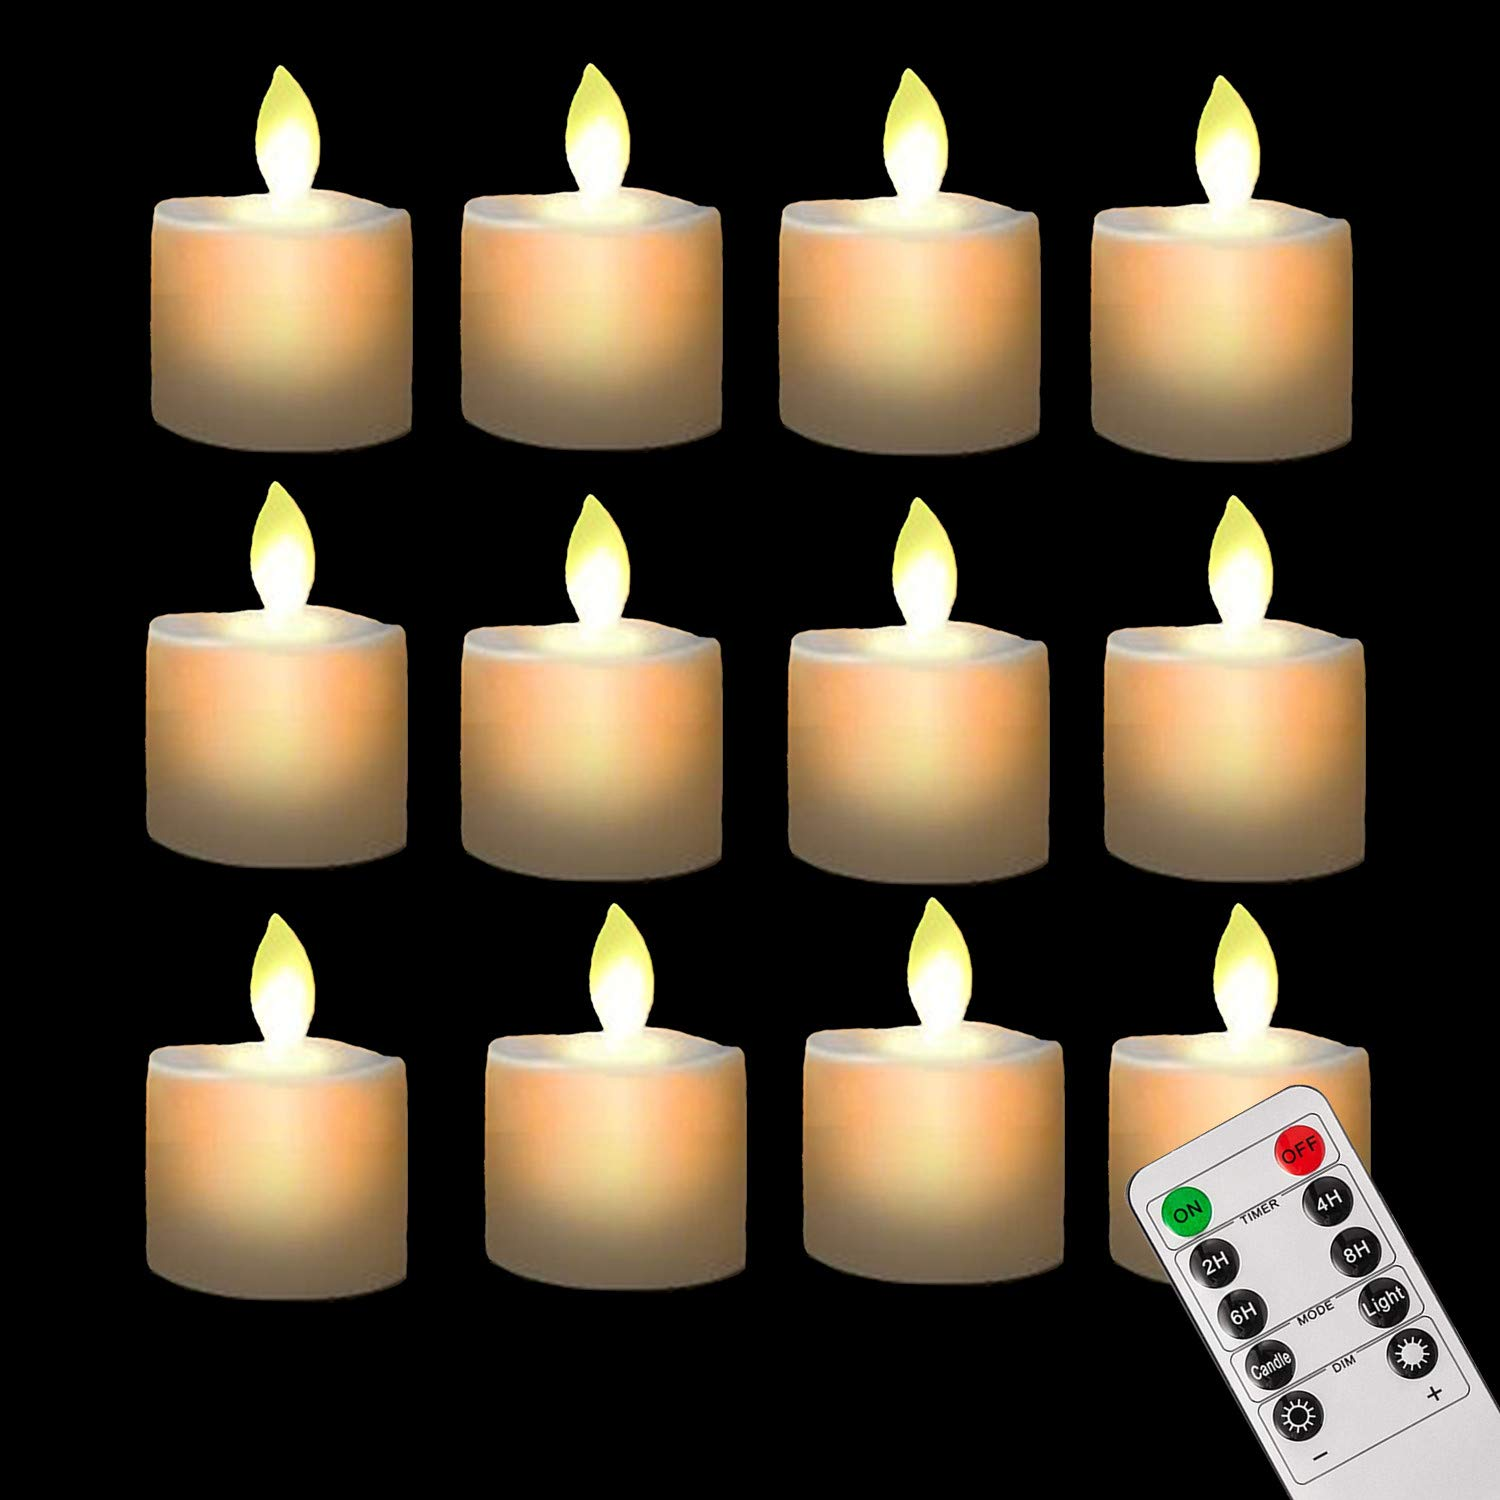 Pack of 12 Realistic and Bright Flickering Bulb Flameless LED Tea Light Fake Flameless Candles with Timer,Battery Operated Warm White with Dancing Flickering Bulb for Christmas/Wedding/Birthday Party by Burning Sister